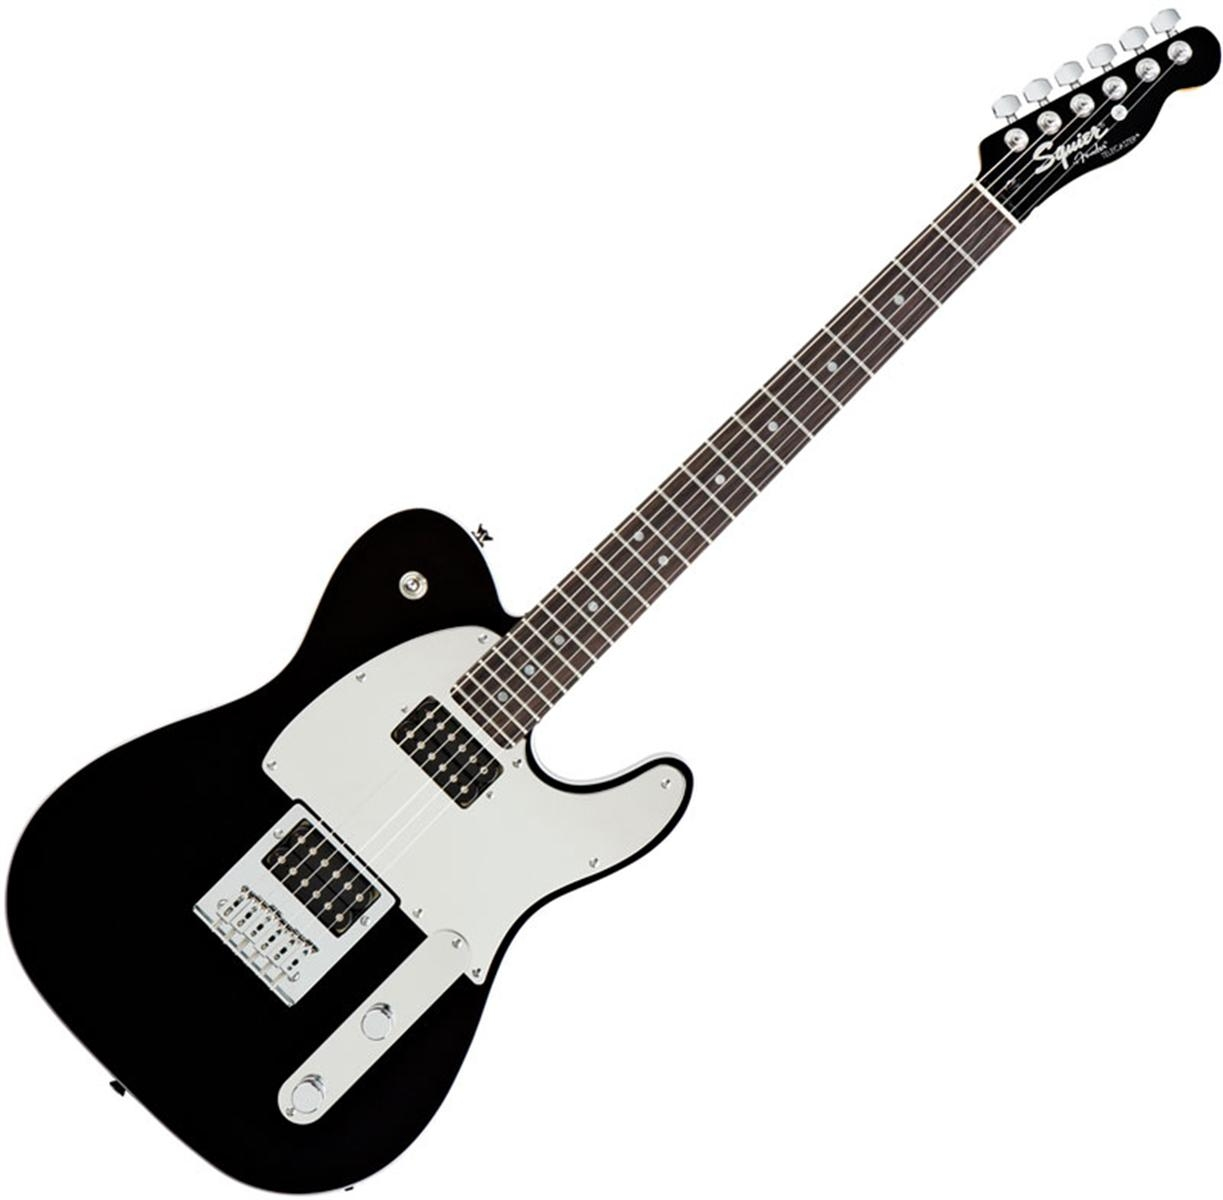 Guitar clipart eletric. Awesome electric collection digital